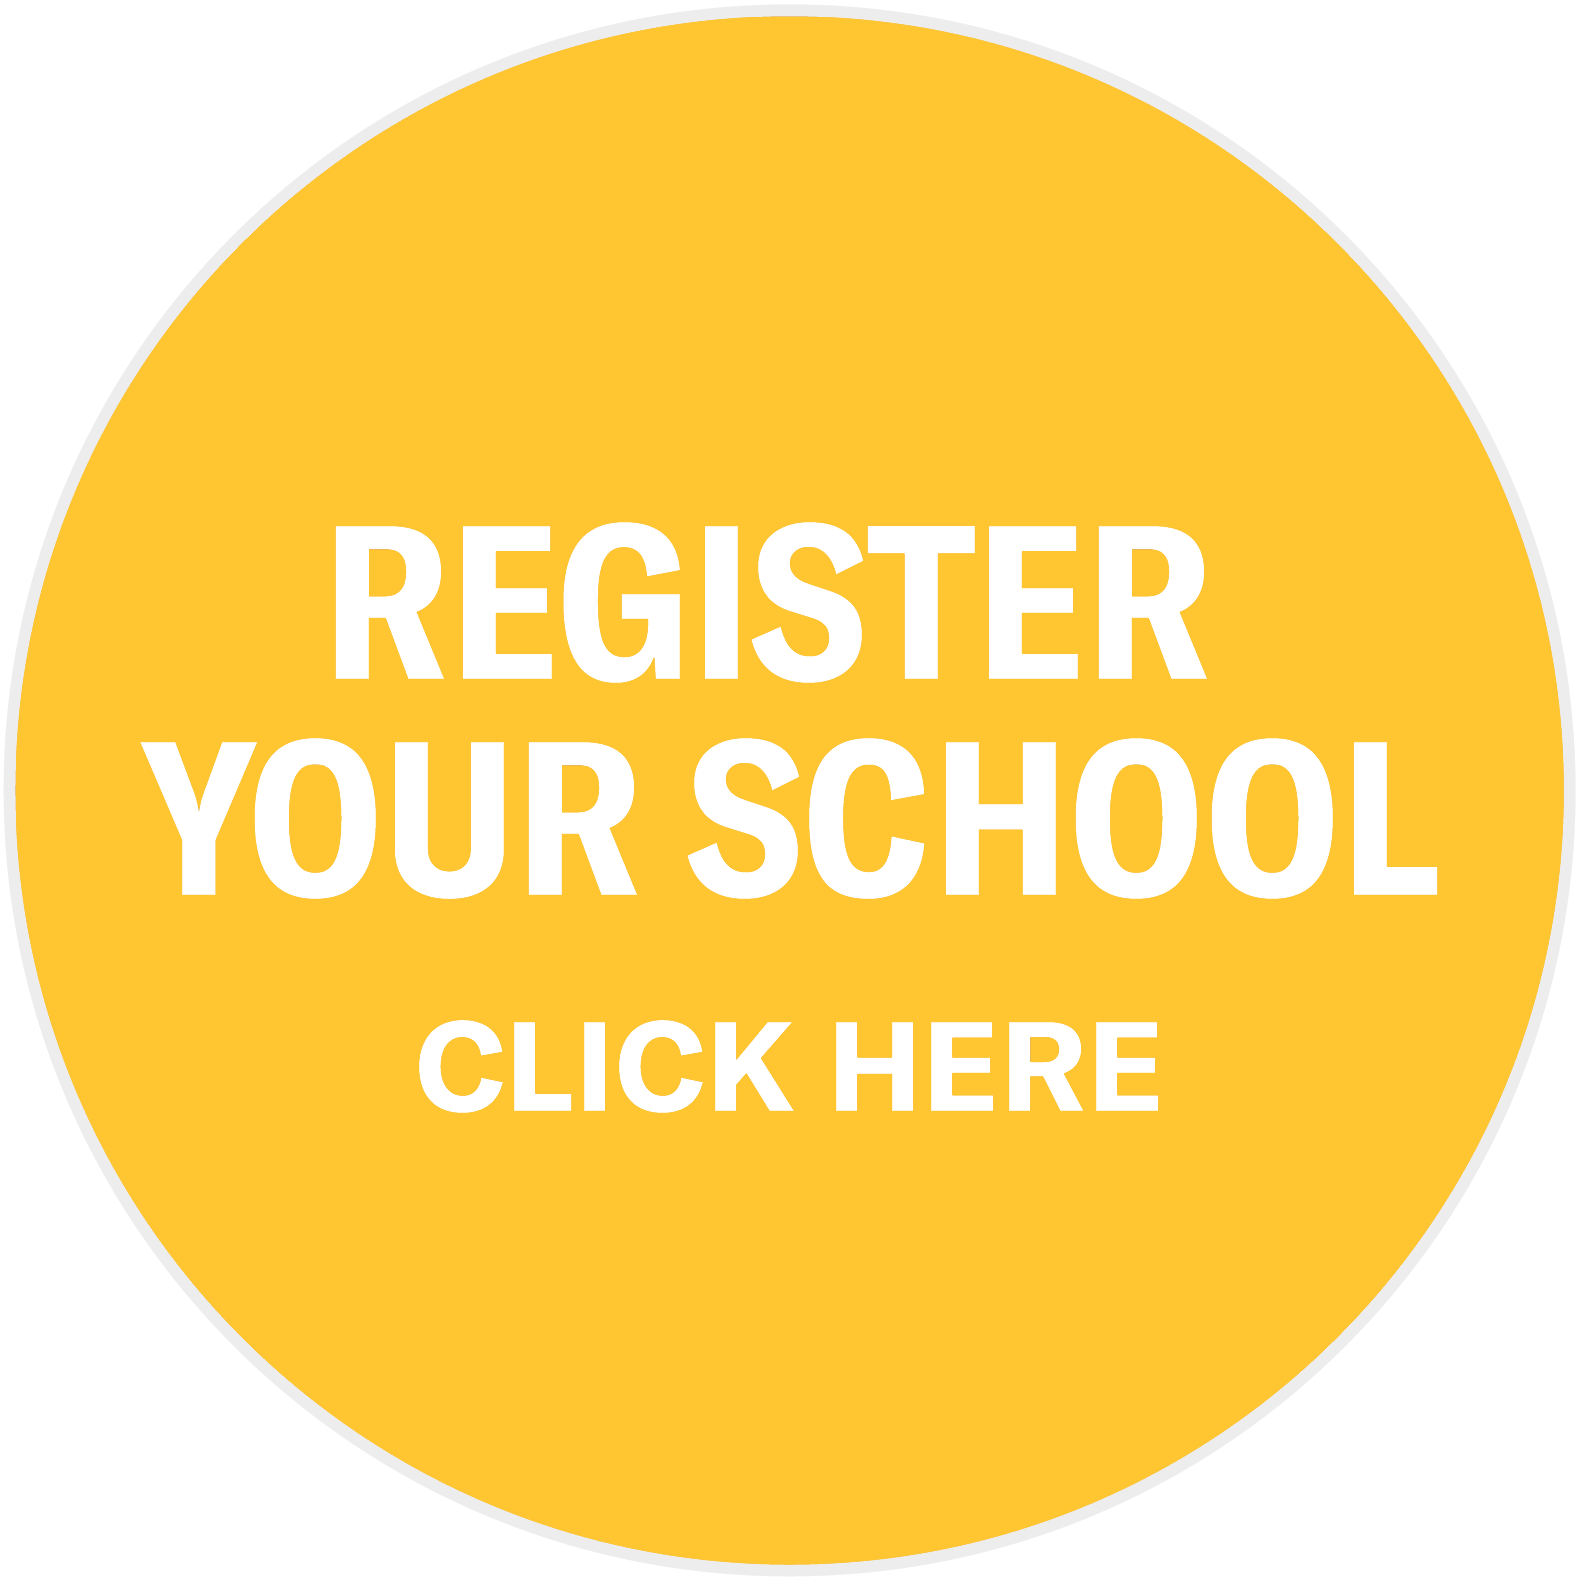 Register Your School